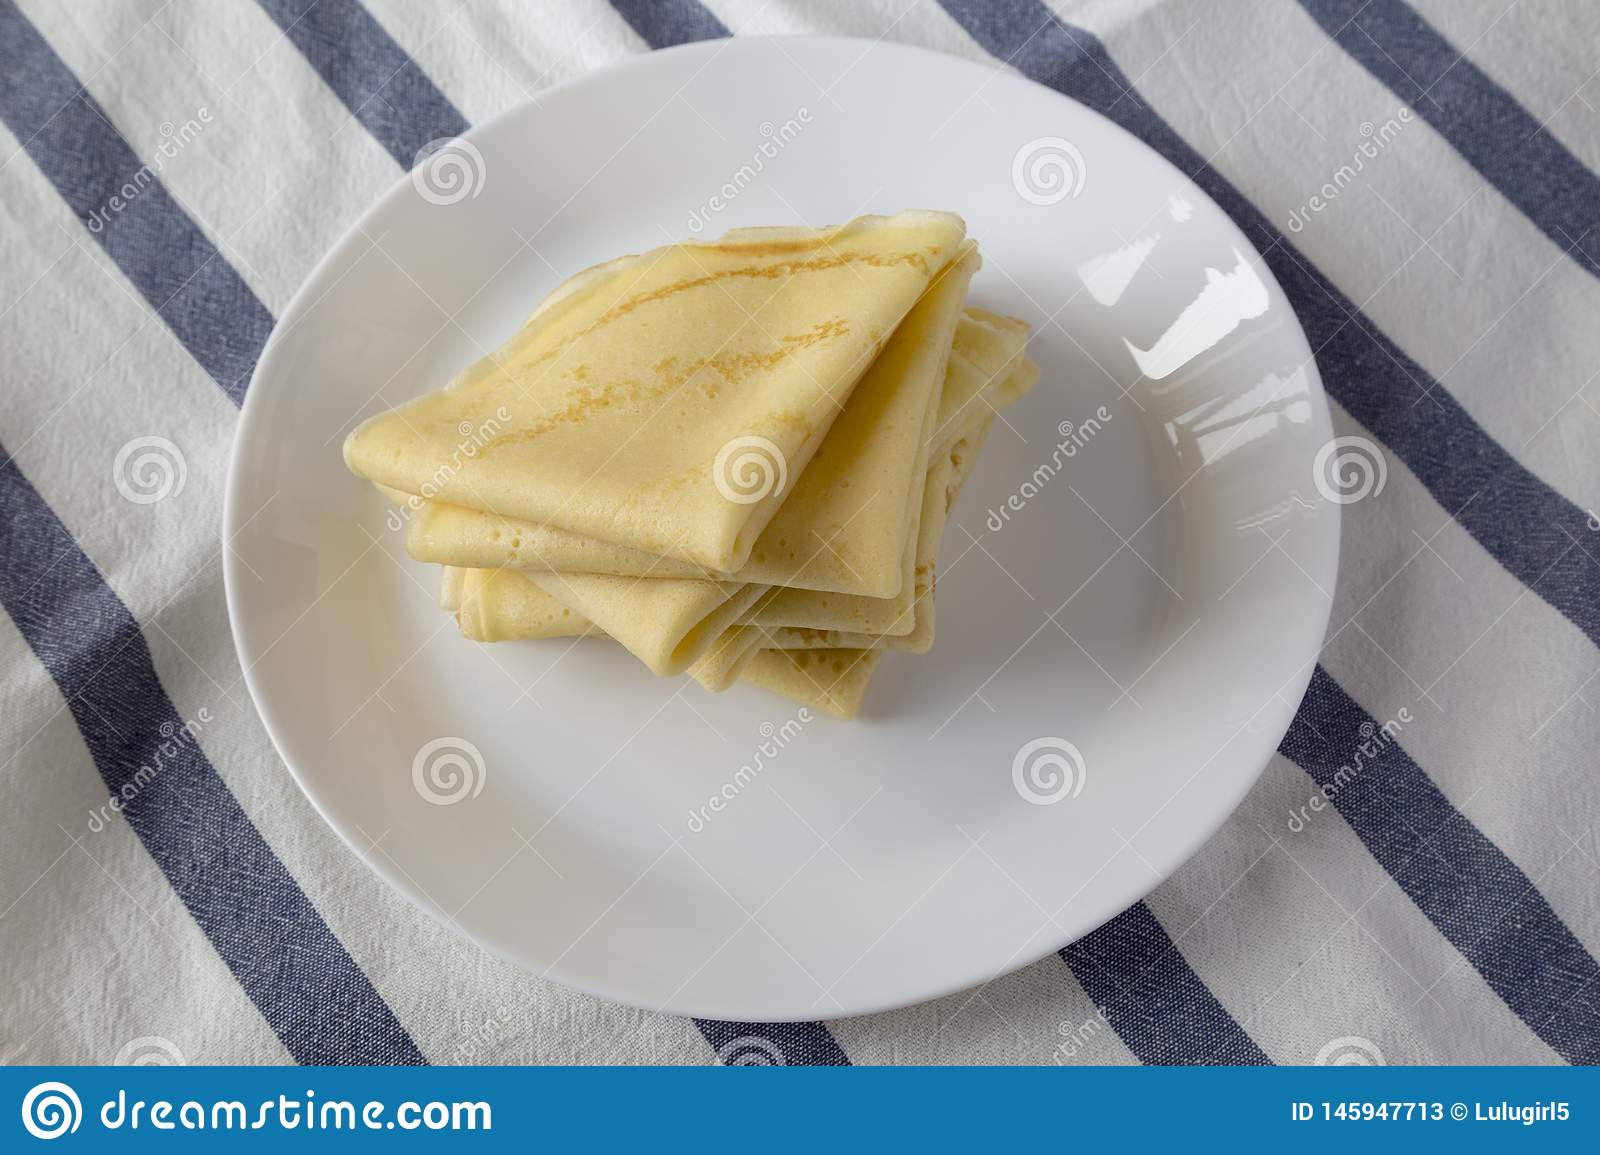 Pile of tasty blini on a white plate, side view. Close-up